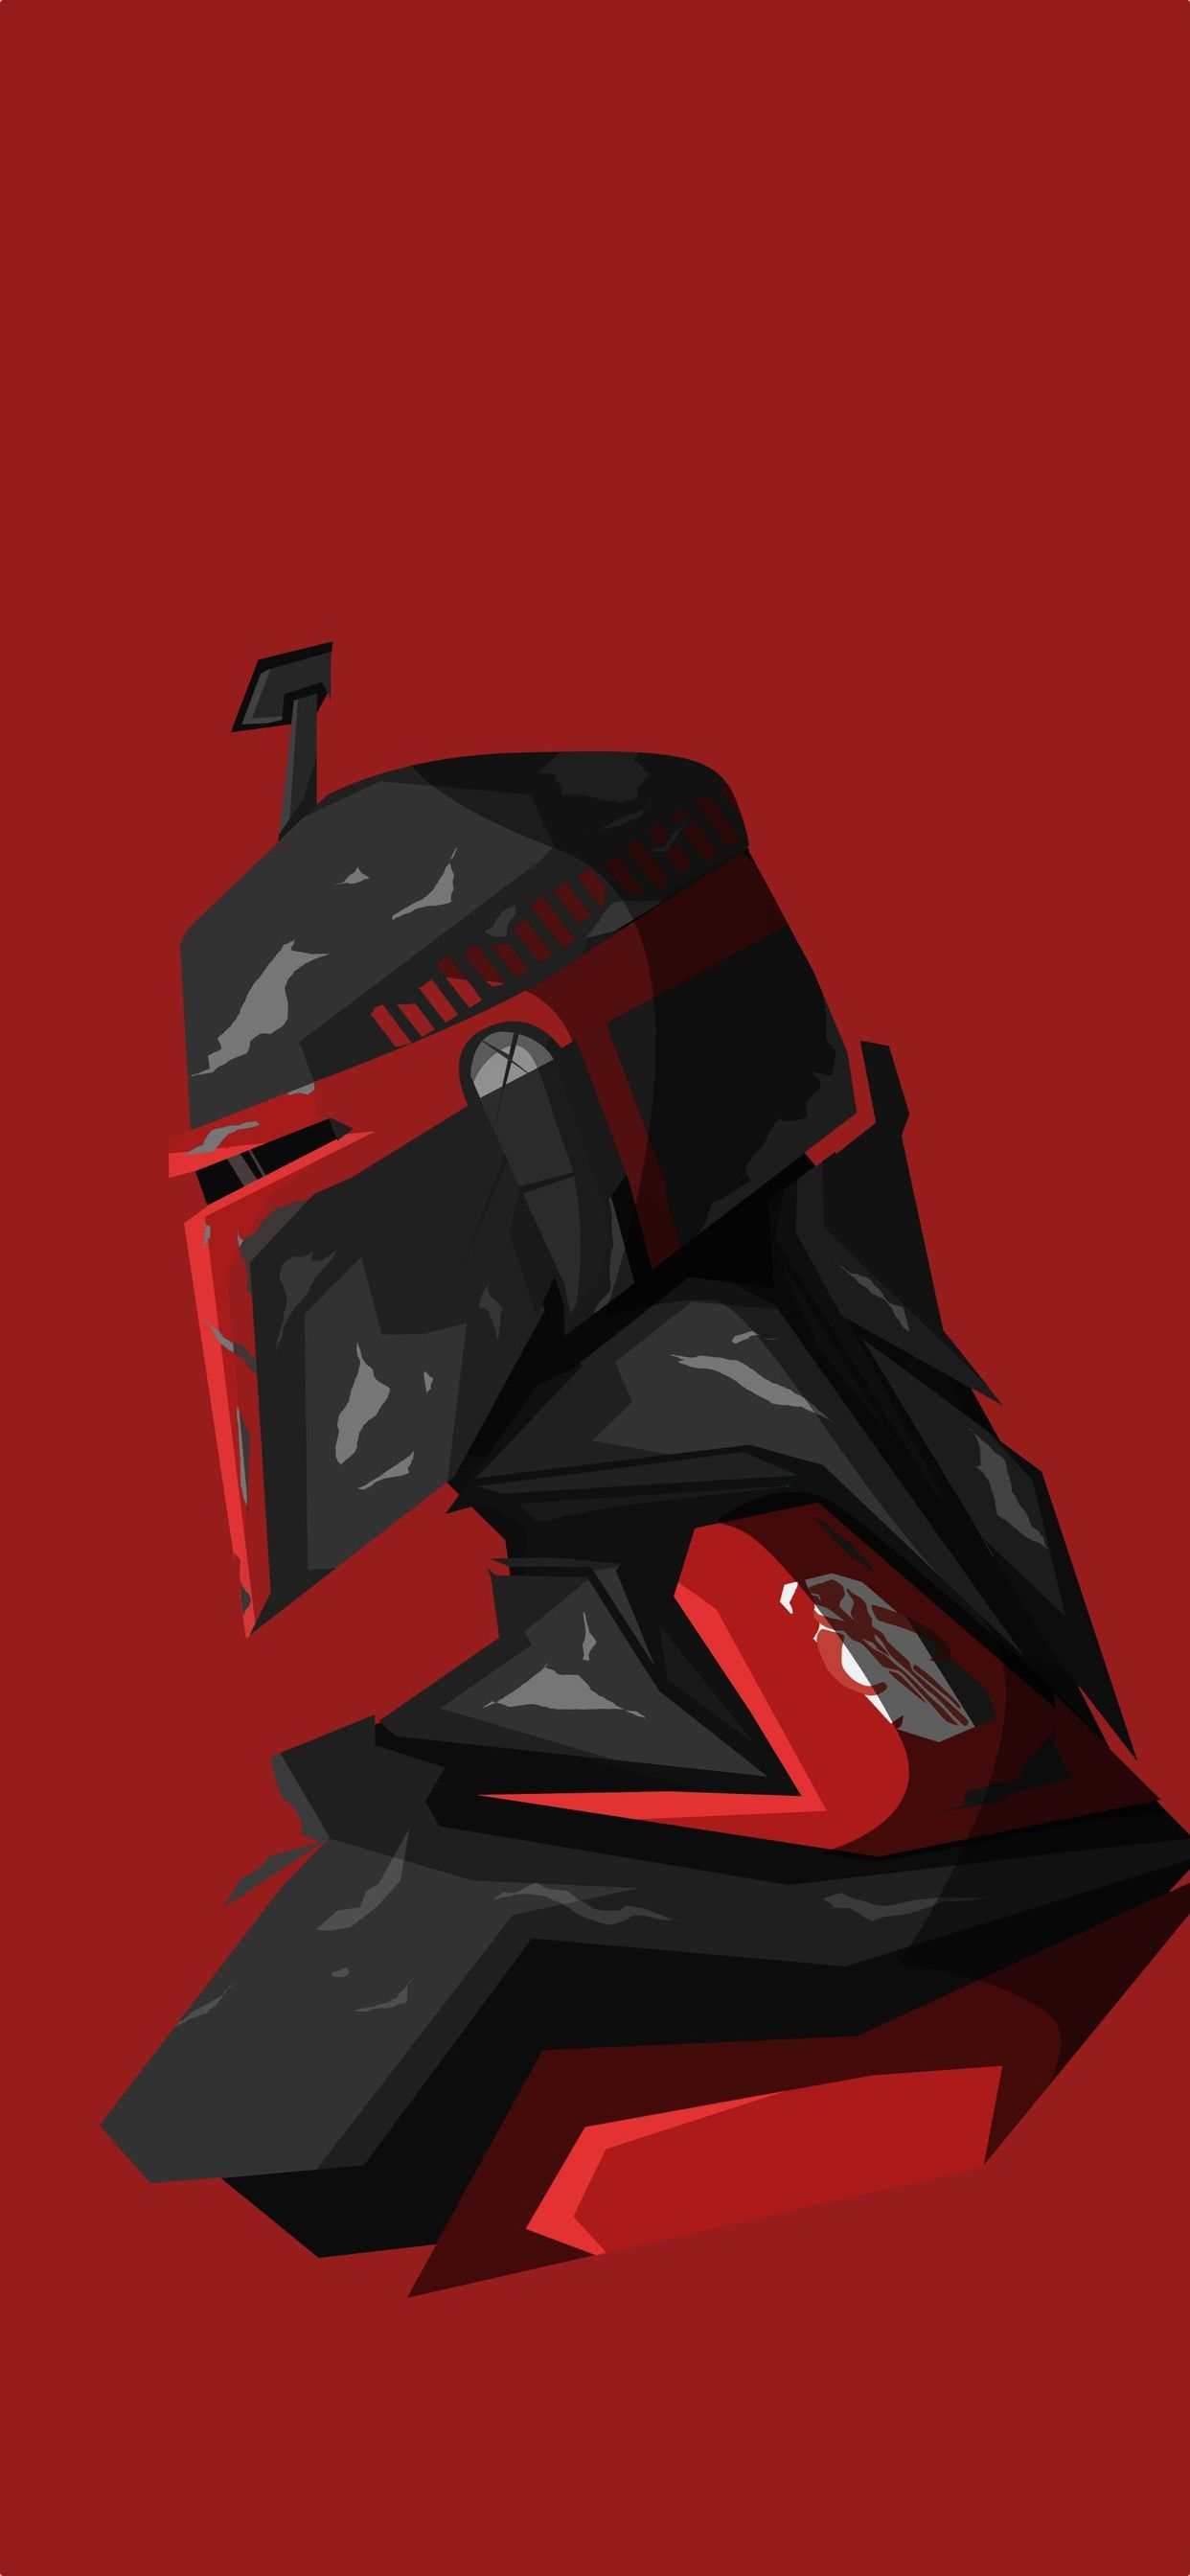 The Mandalorian Iphone Wallpapers Top Free The Mandalorian Iphone Backgrounds Wallpaperaccess